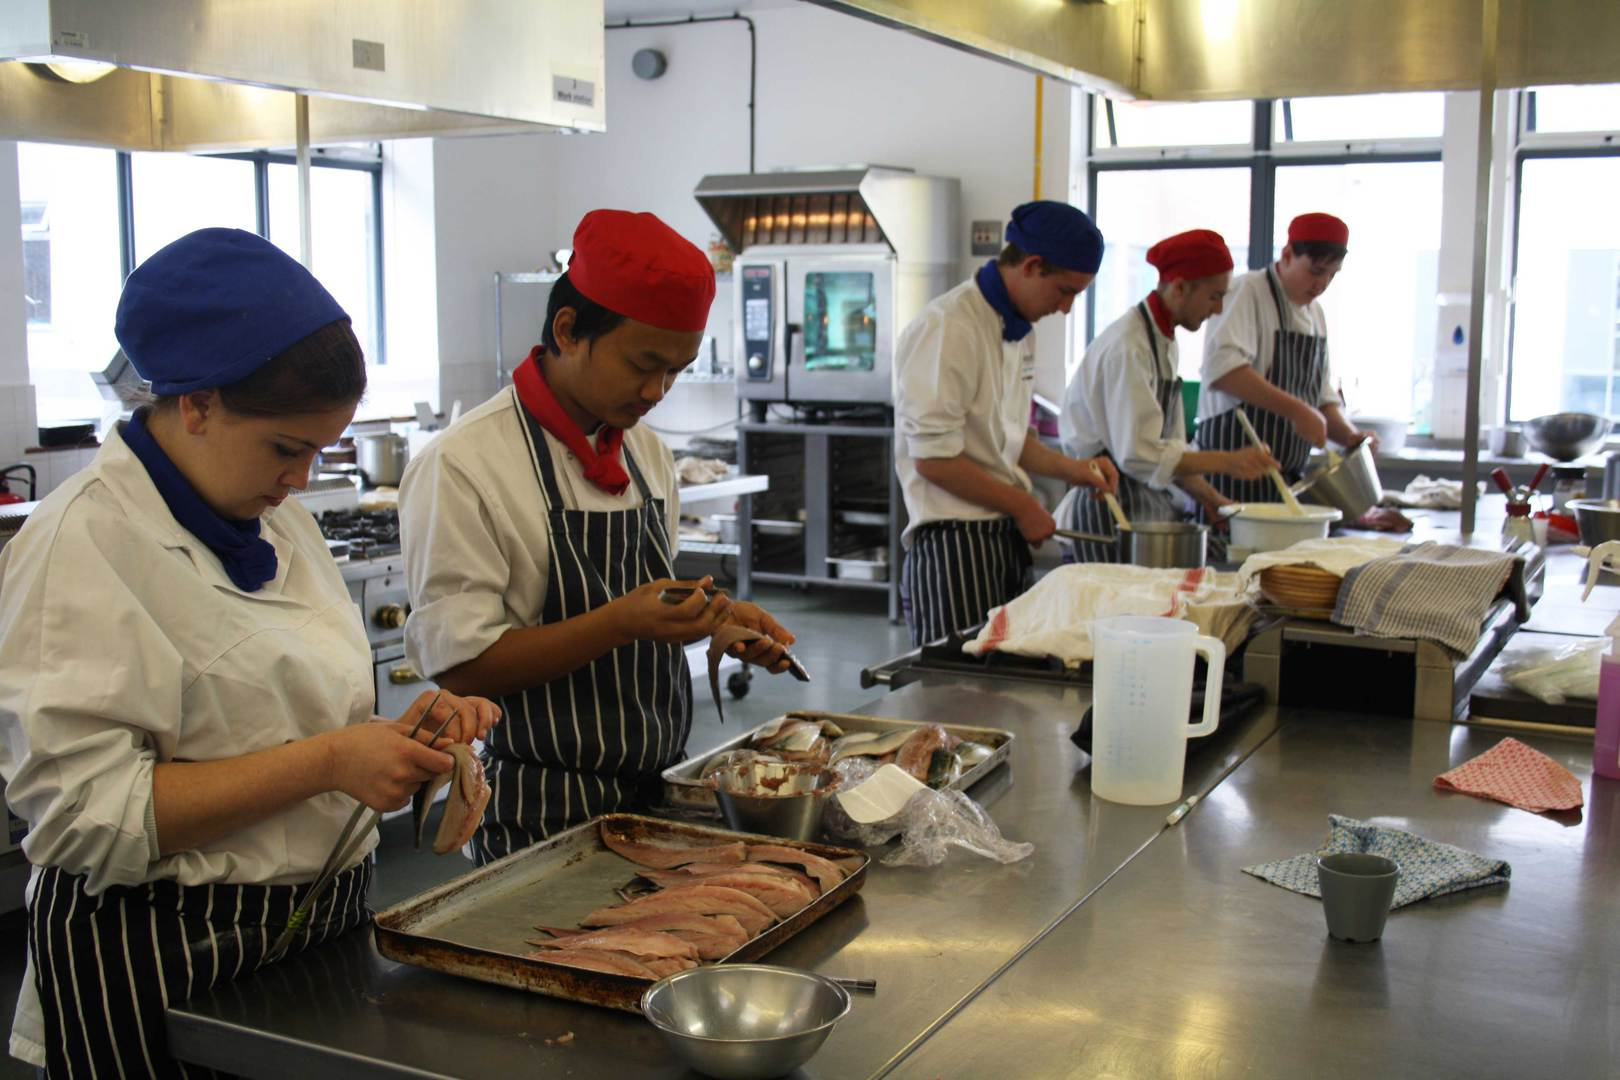 Students busy preparing the canapes